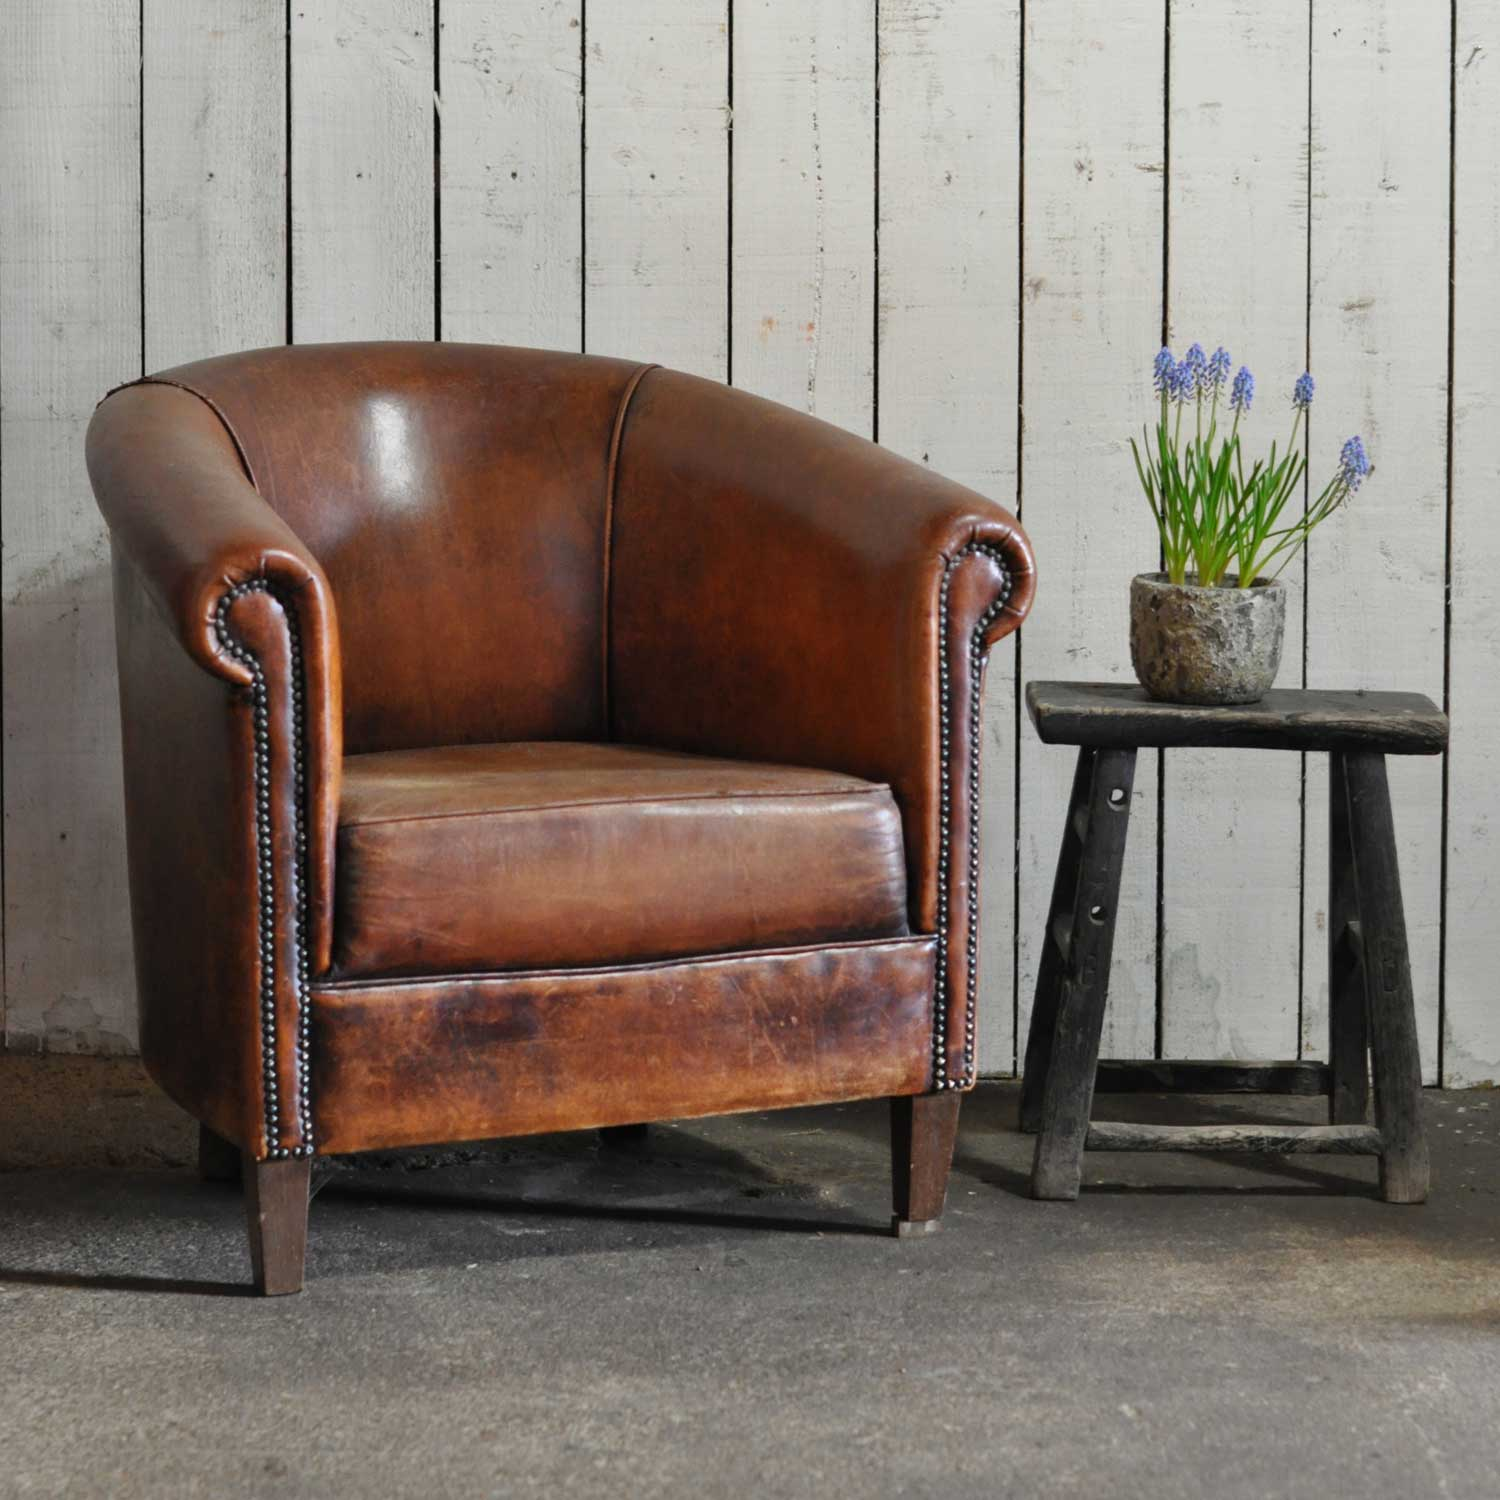 French Club Chair Sold Home Barn Vintage